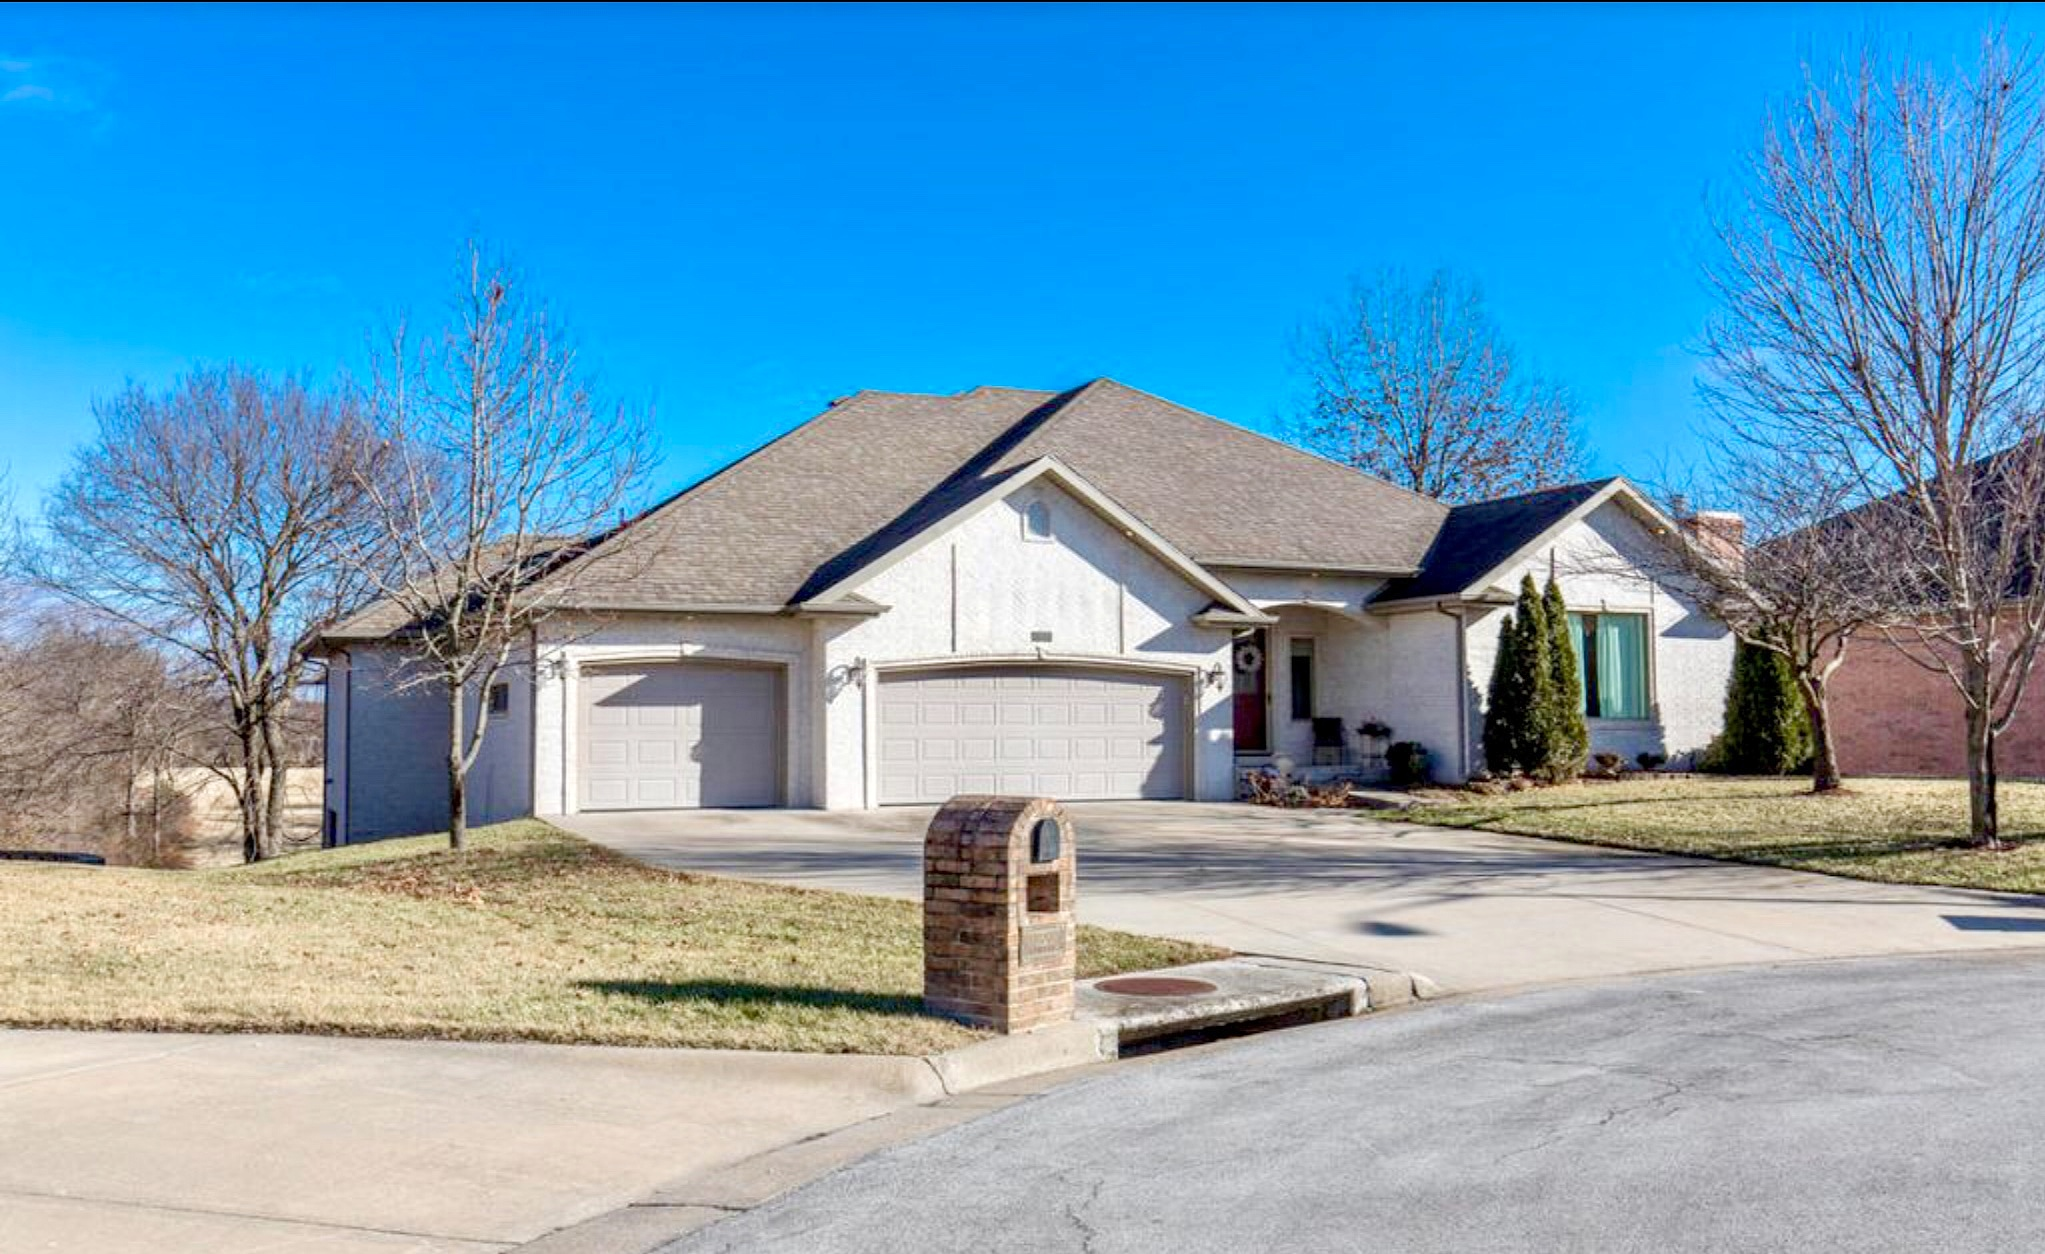 4 Bedrooms / 3.5 Bathrooms - Est. $2,435.00 / Month* for rent in Springfield, MO